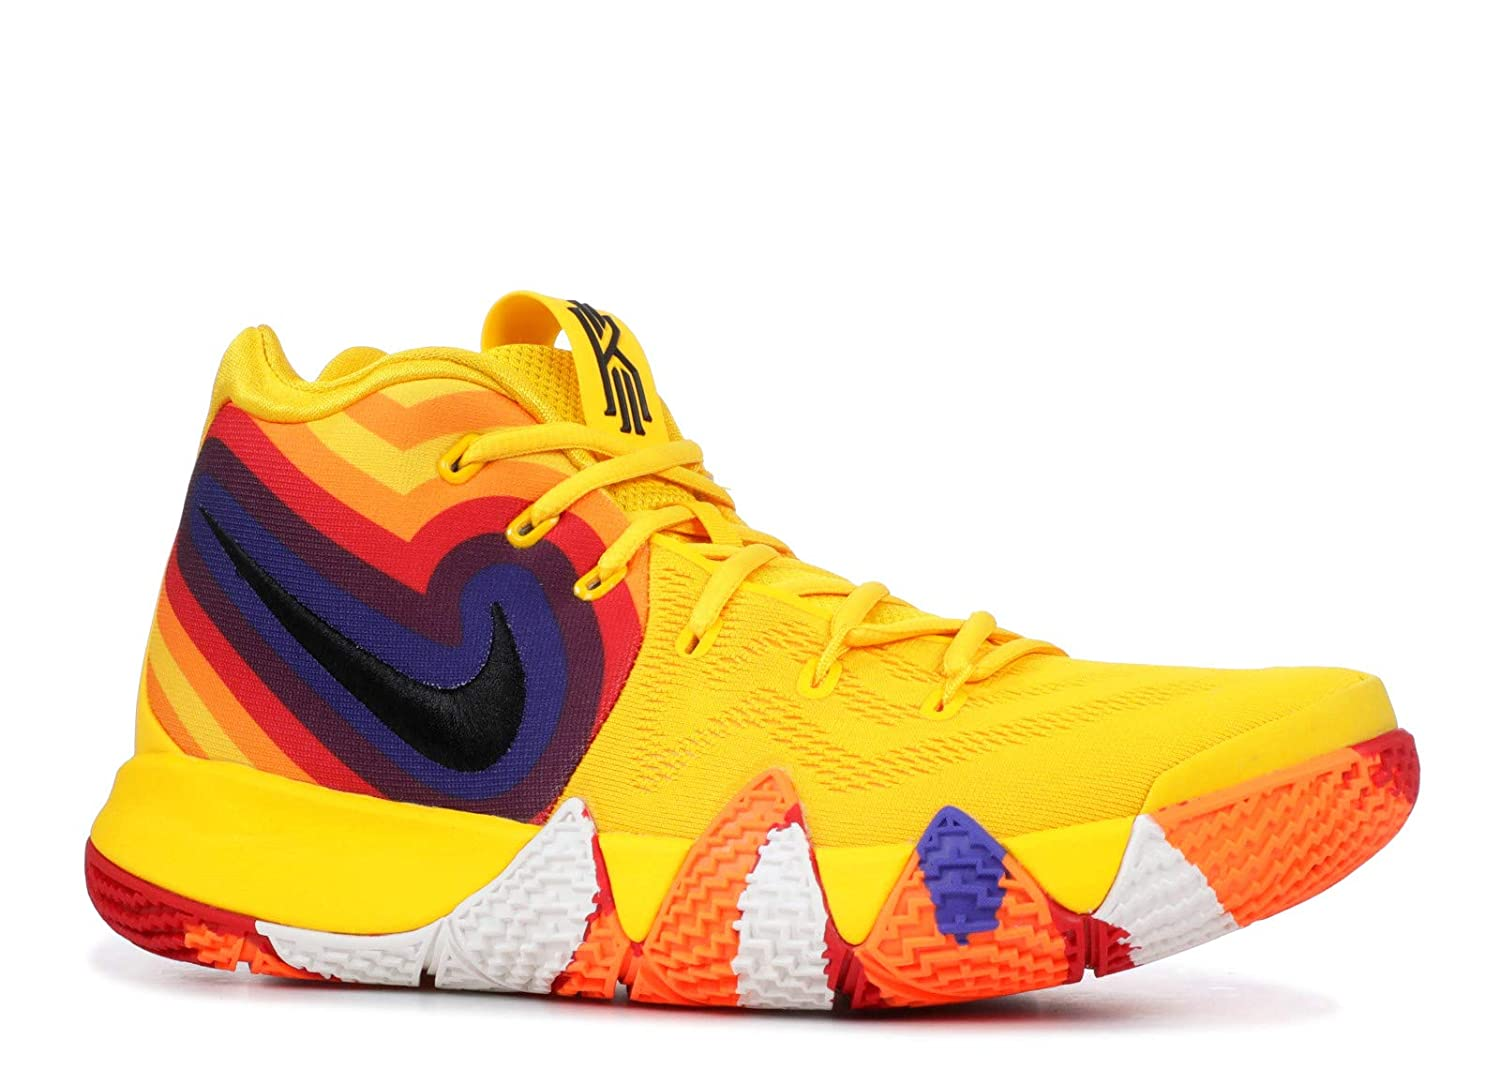 best service 8f3eb bd470 Amazon.com | Nike Kyrie 4 Decades Pack 70s 943806-700 ...